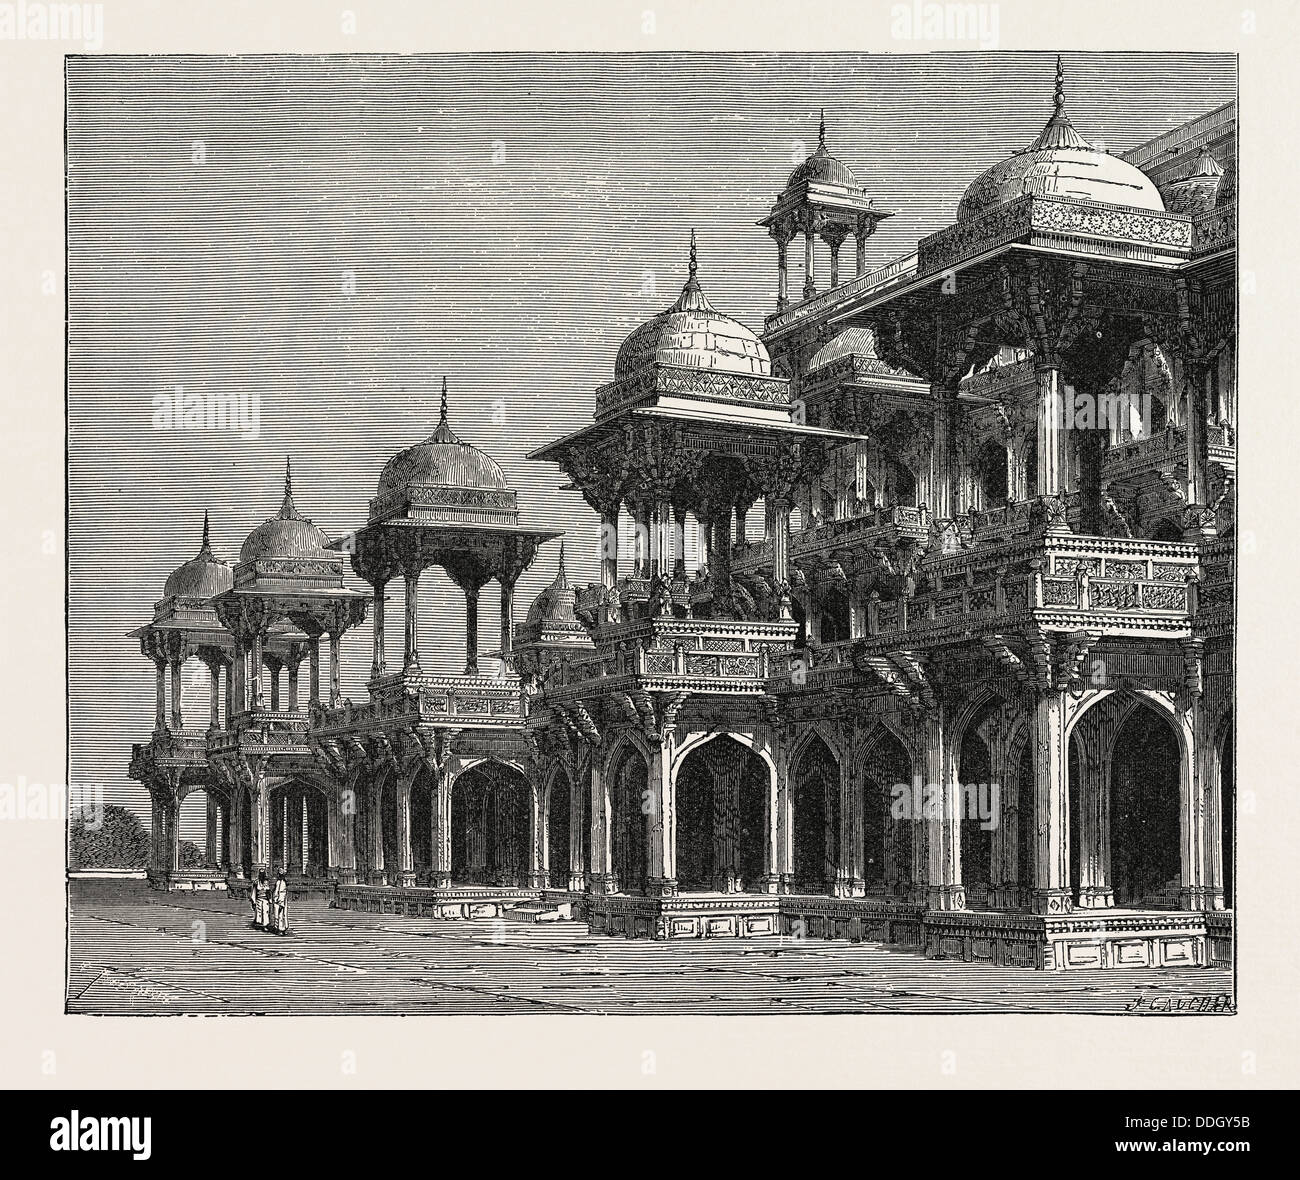 THE MAUSOLEUM OF THE EMPEROR AKBAR, AT SIKANDRA, A SUBURB OF AGRA CITY. - Stock Image